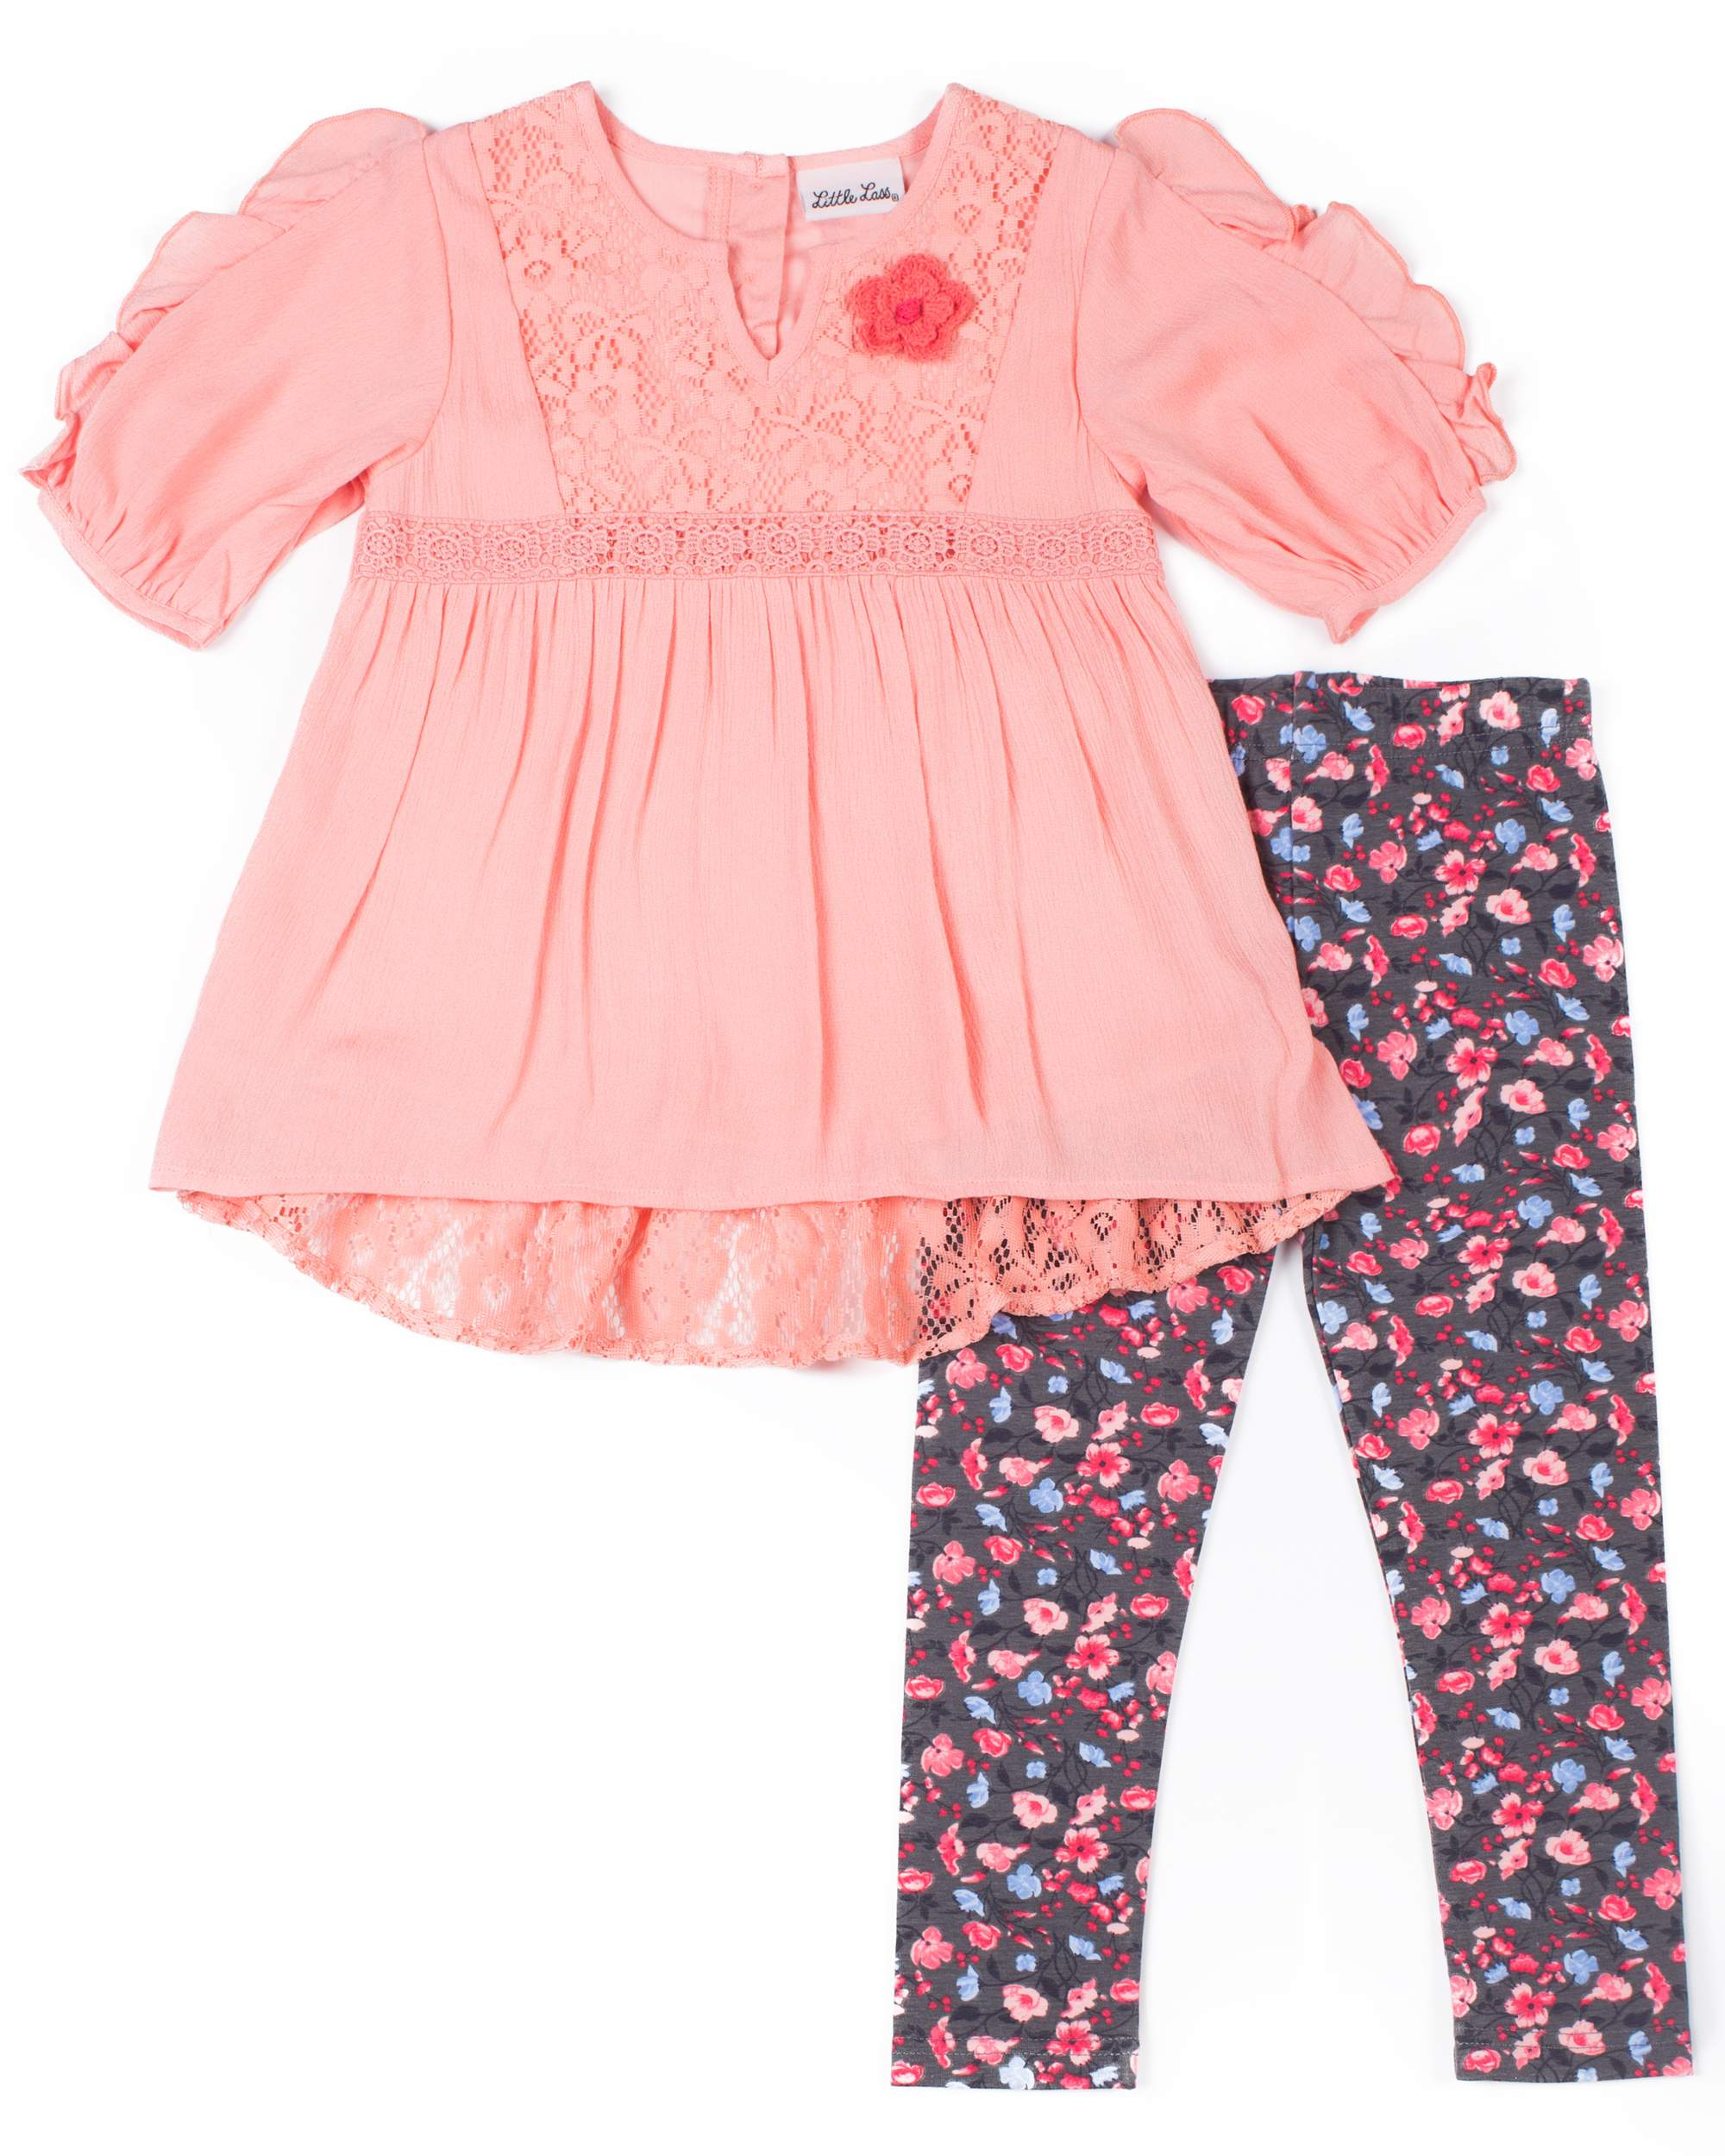 Chiffon Lace Detail Blouse & Floral Leggings, 2-Piece Outfit Set (Toddler Girls)